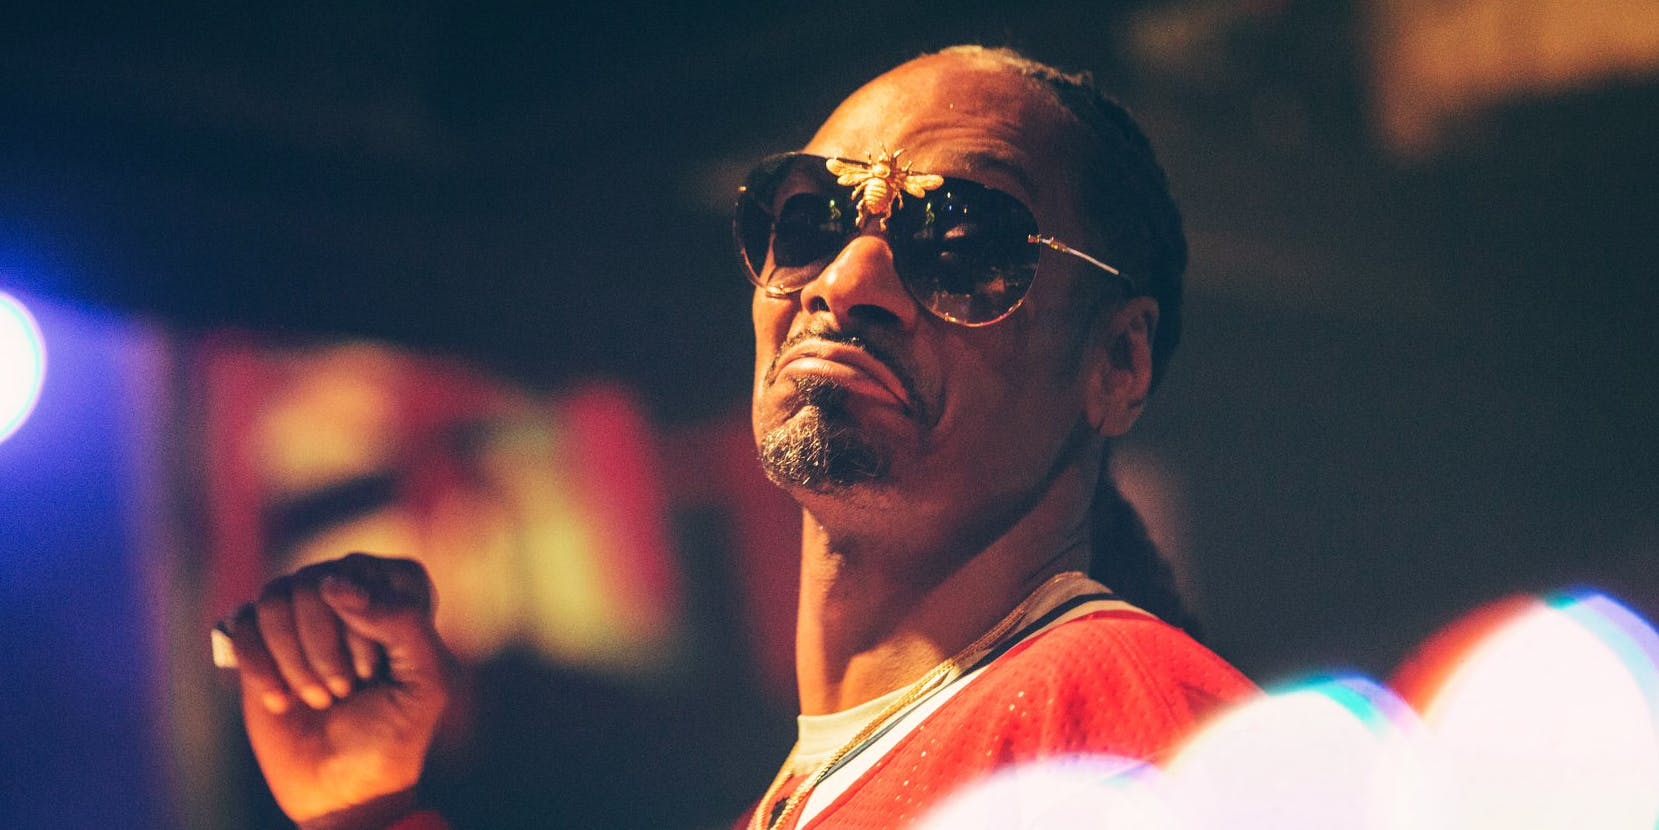 Snoop Dogg wearing a Montreal Canadiens jersey while in Quebec.